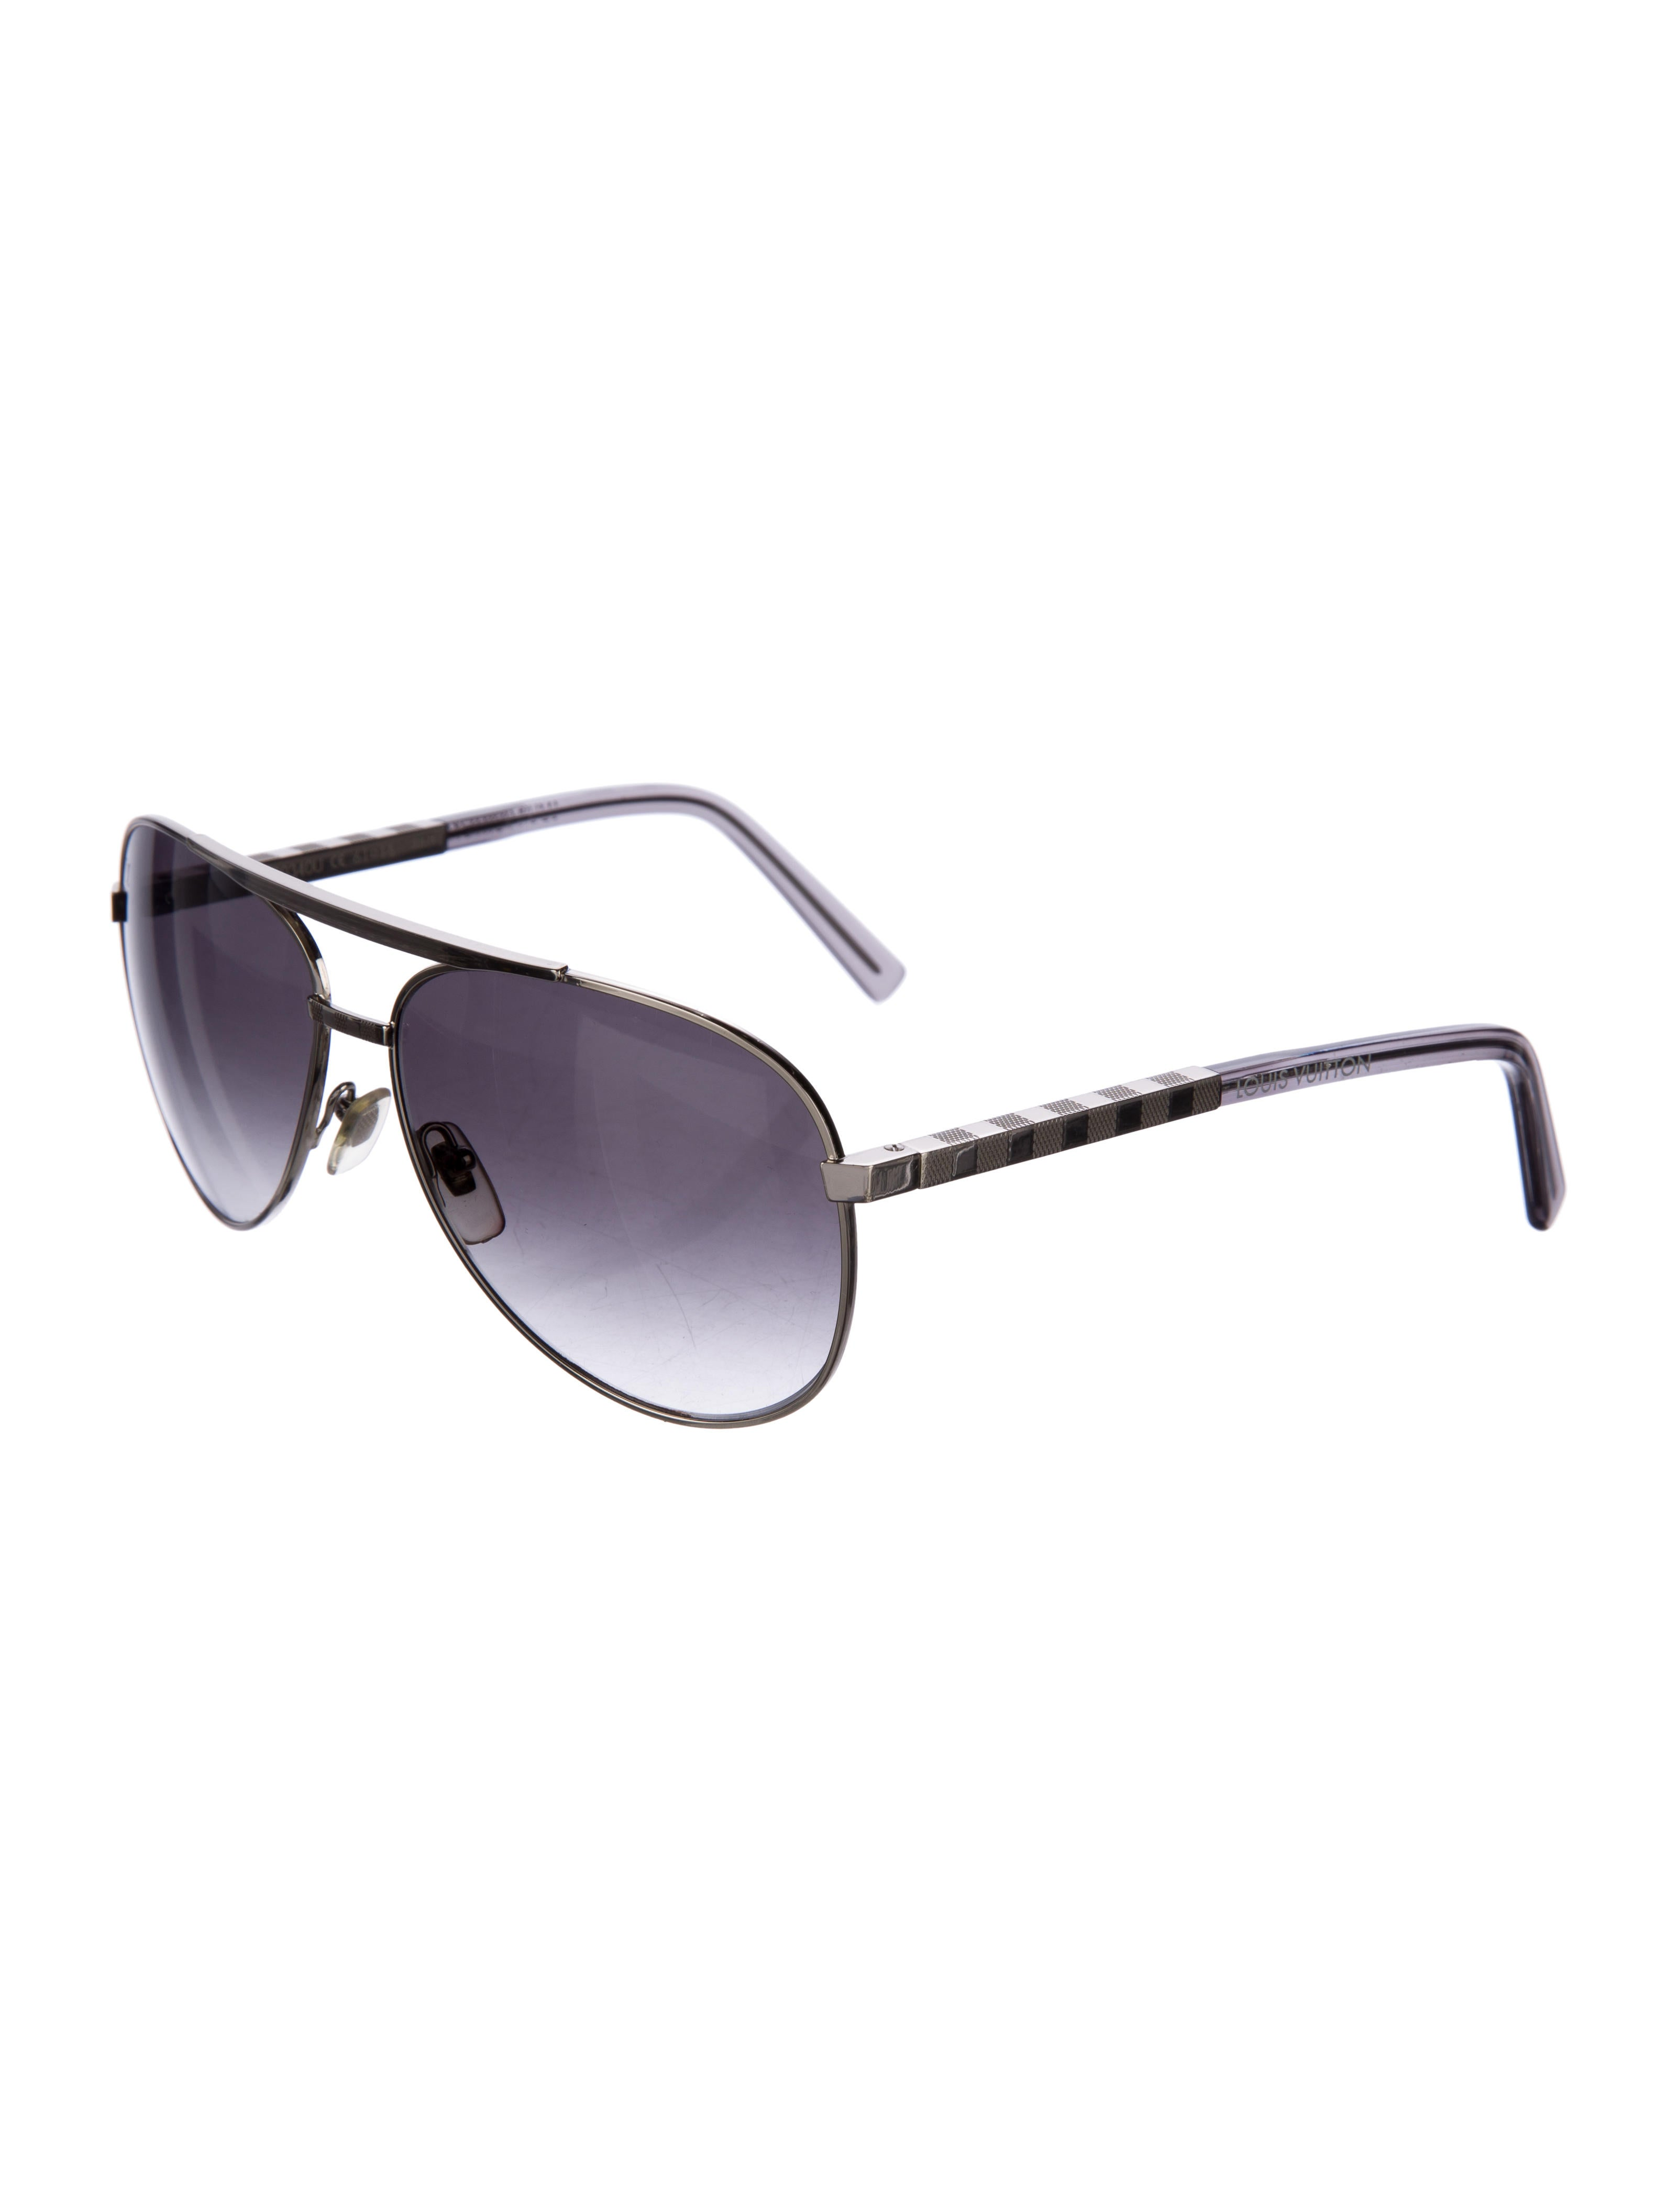 208e0e55d893 Louis Vuitton Mens Sunglasses Attitude